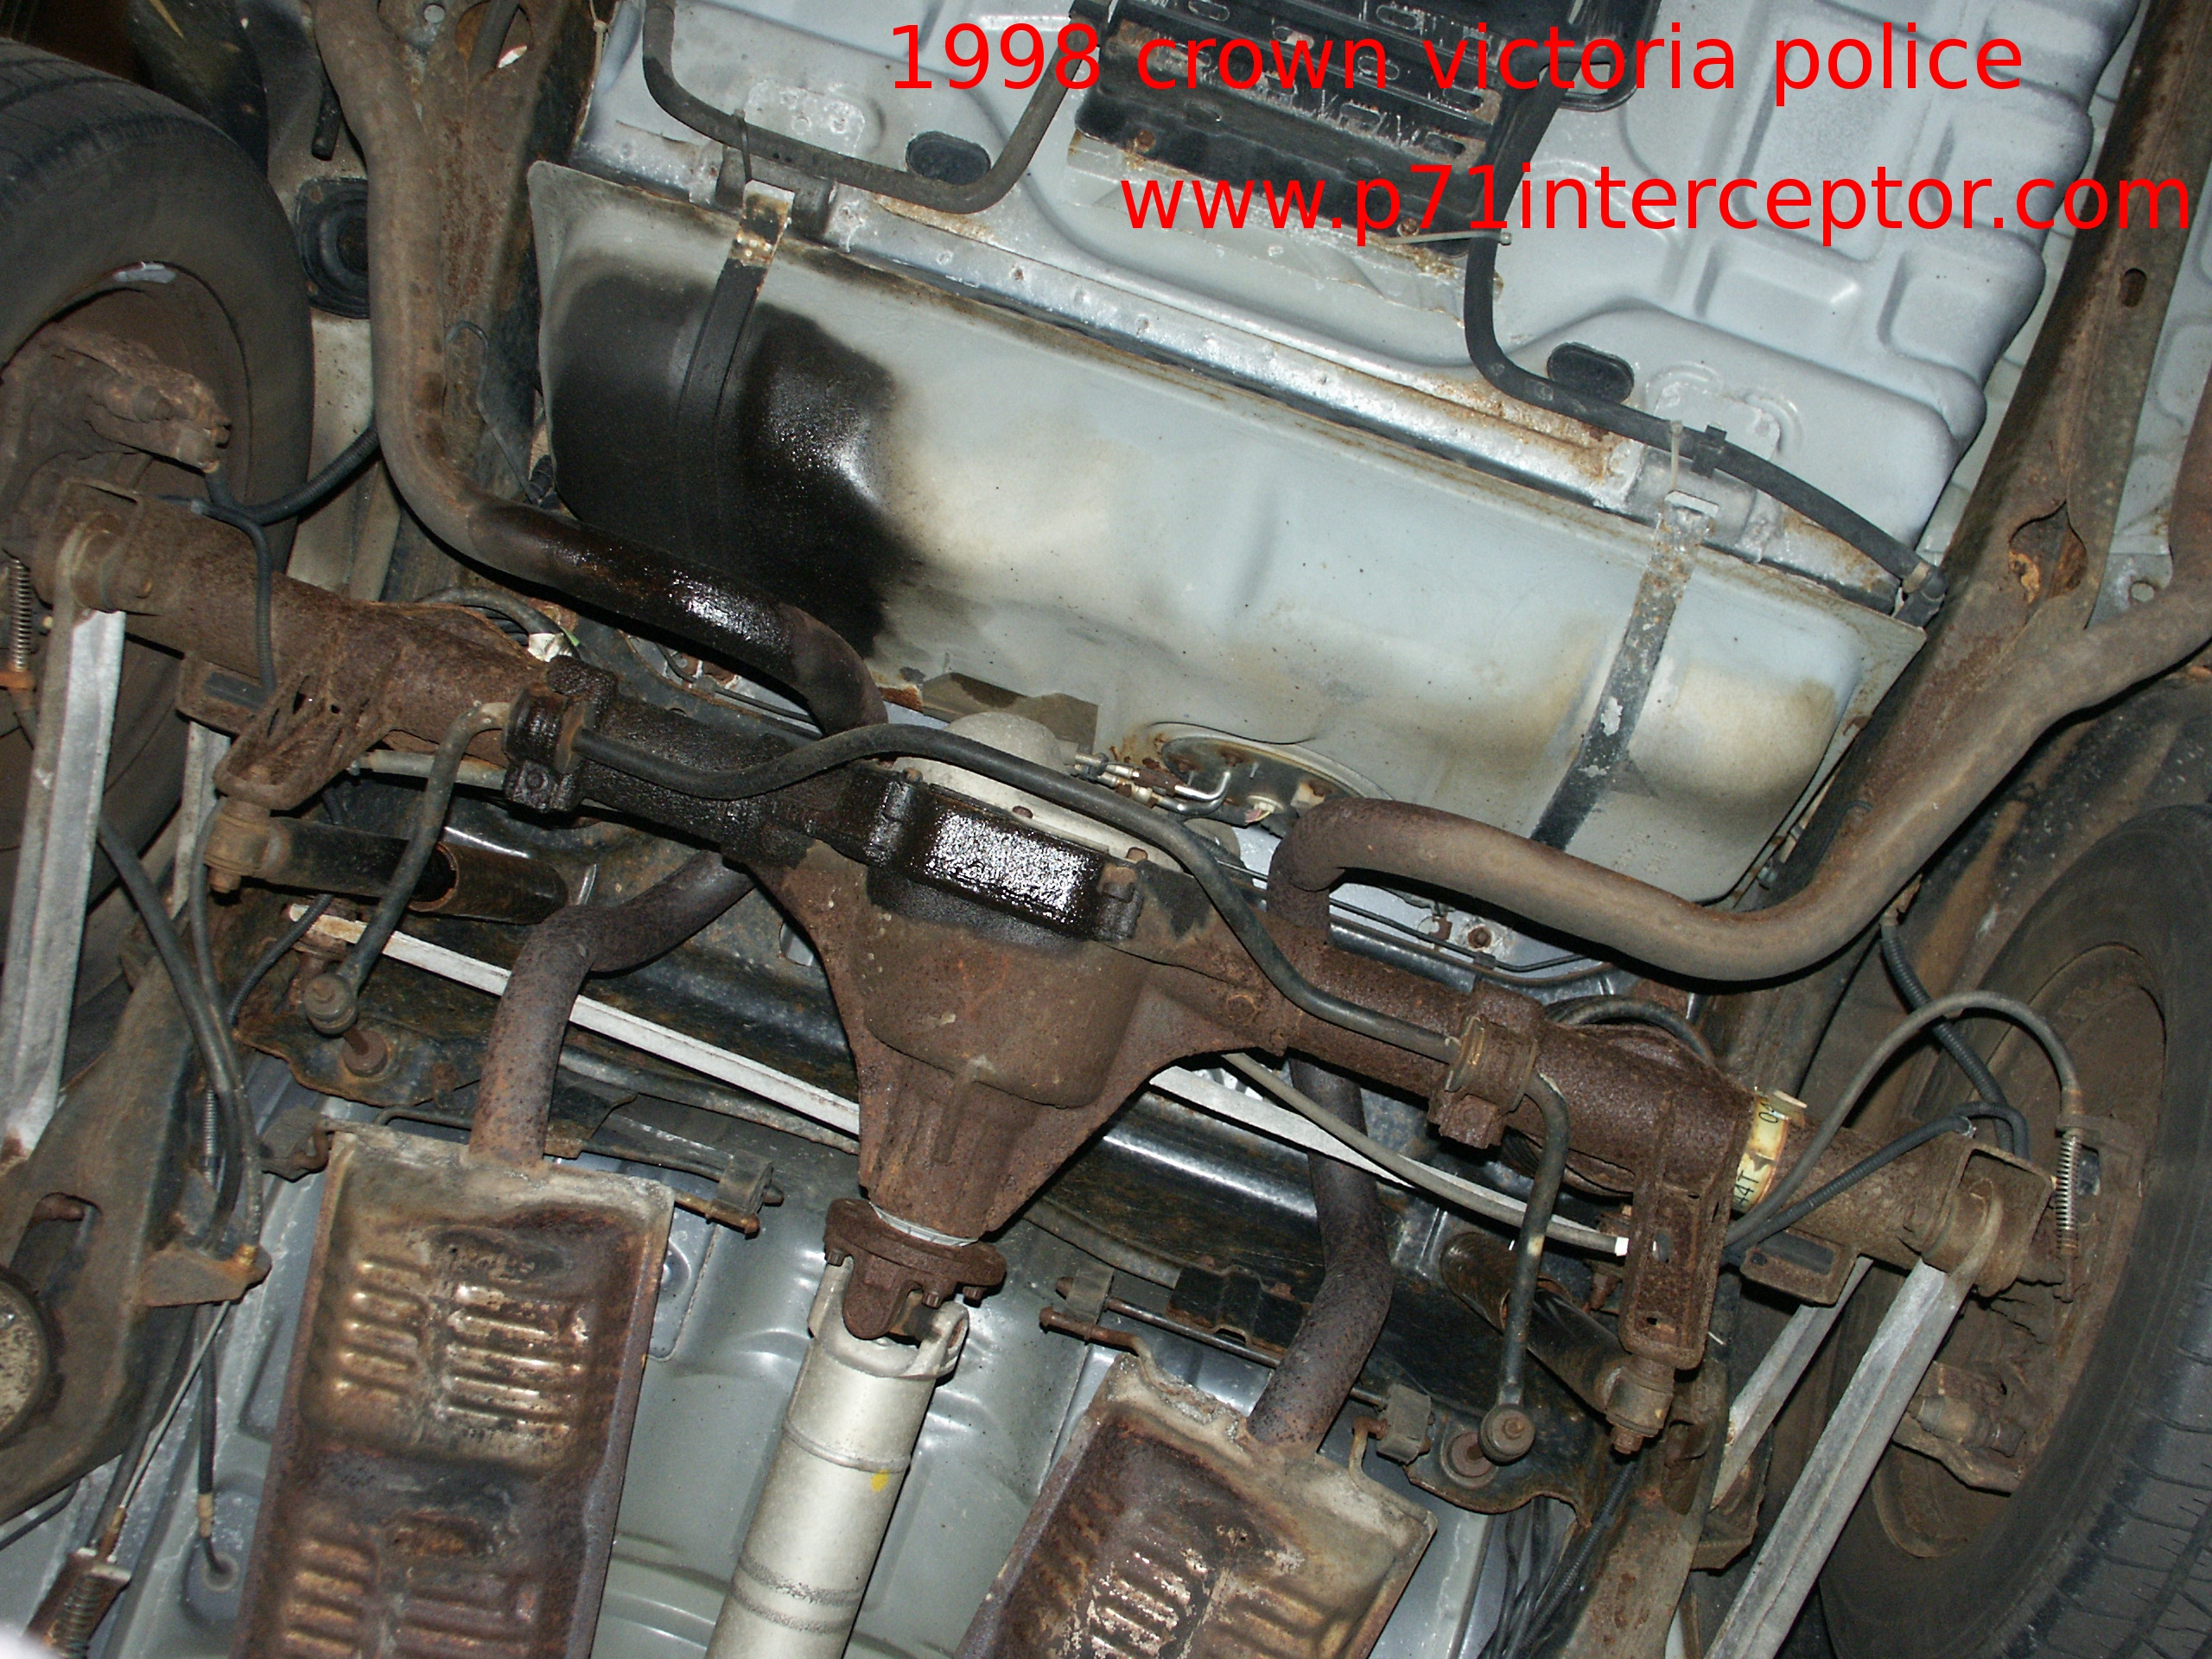 1997 mercury grand marquis engine diagram all wiring diagram 2000 Mercury Grand Marquis Front End Parts Diagram ford crown victoria exhaust hanger replacement 1997 dodge grand caravan engine diagram 1997 mercury grand marquis engine diagram